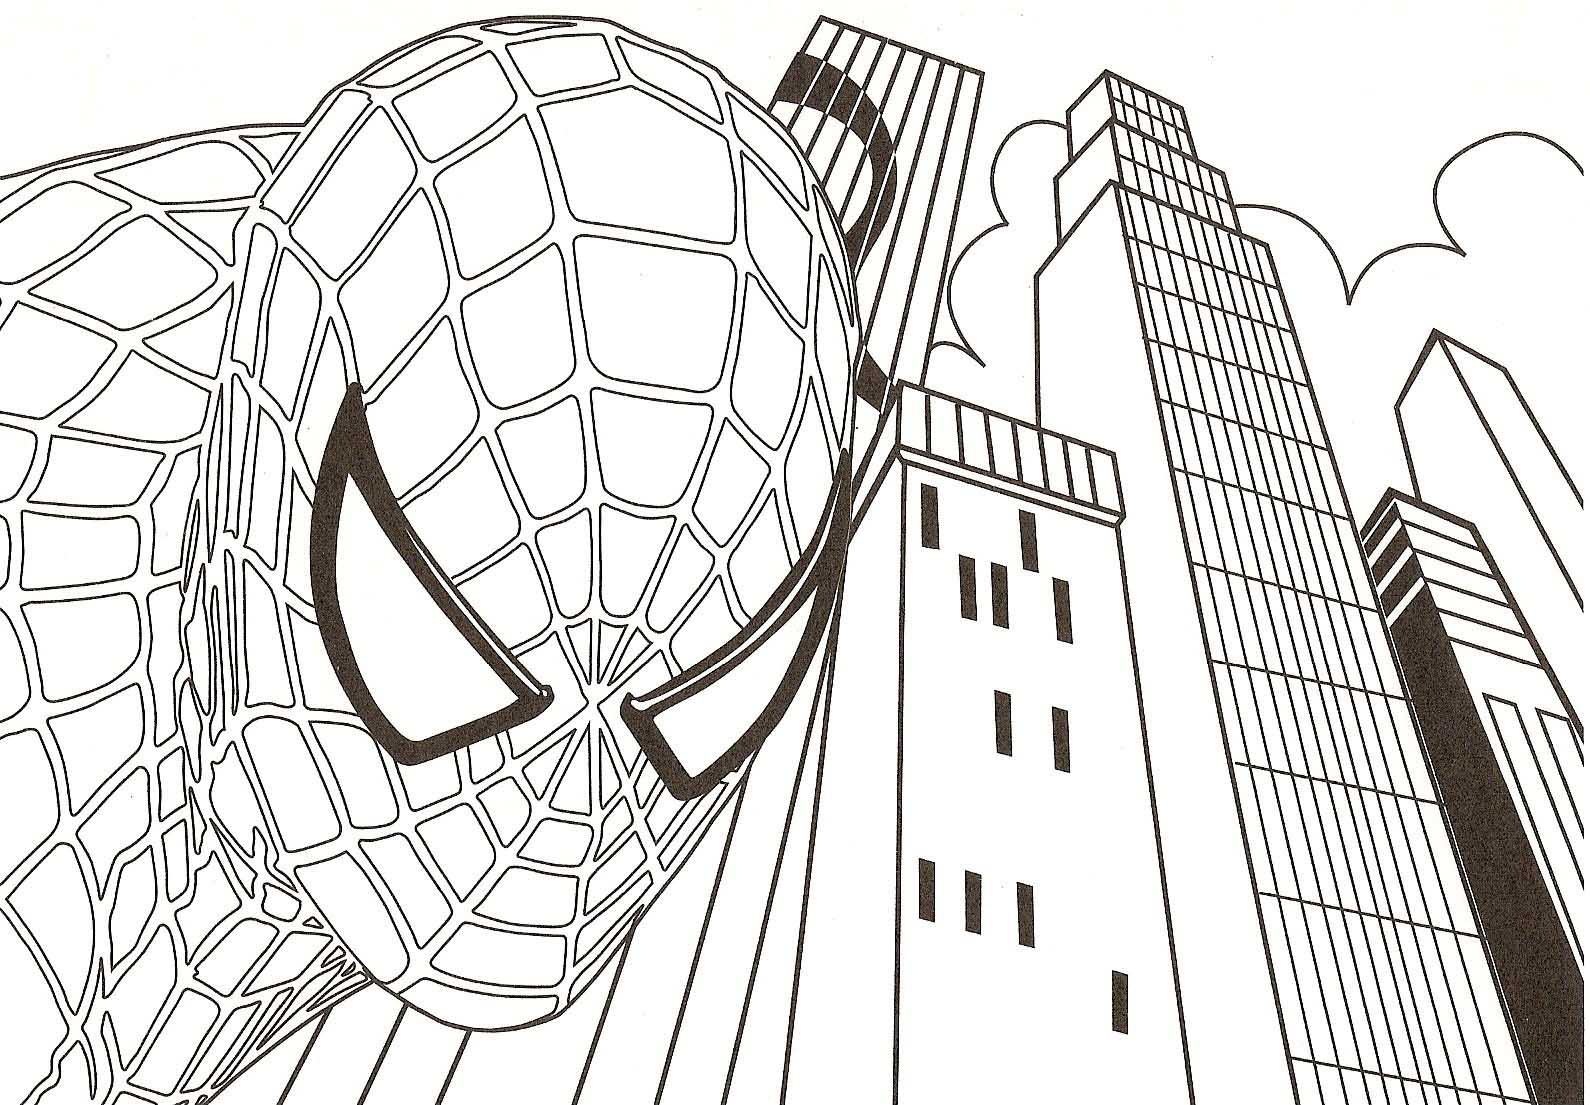 Spider-Man coloring #2, Download drawings